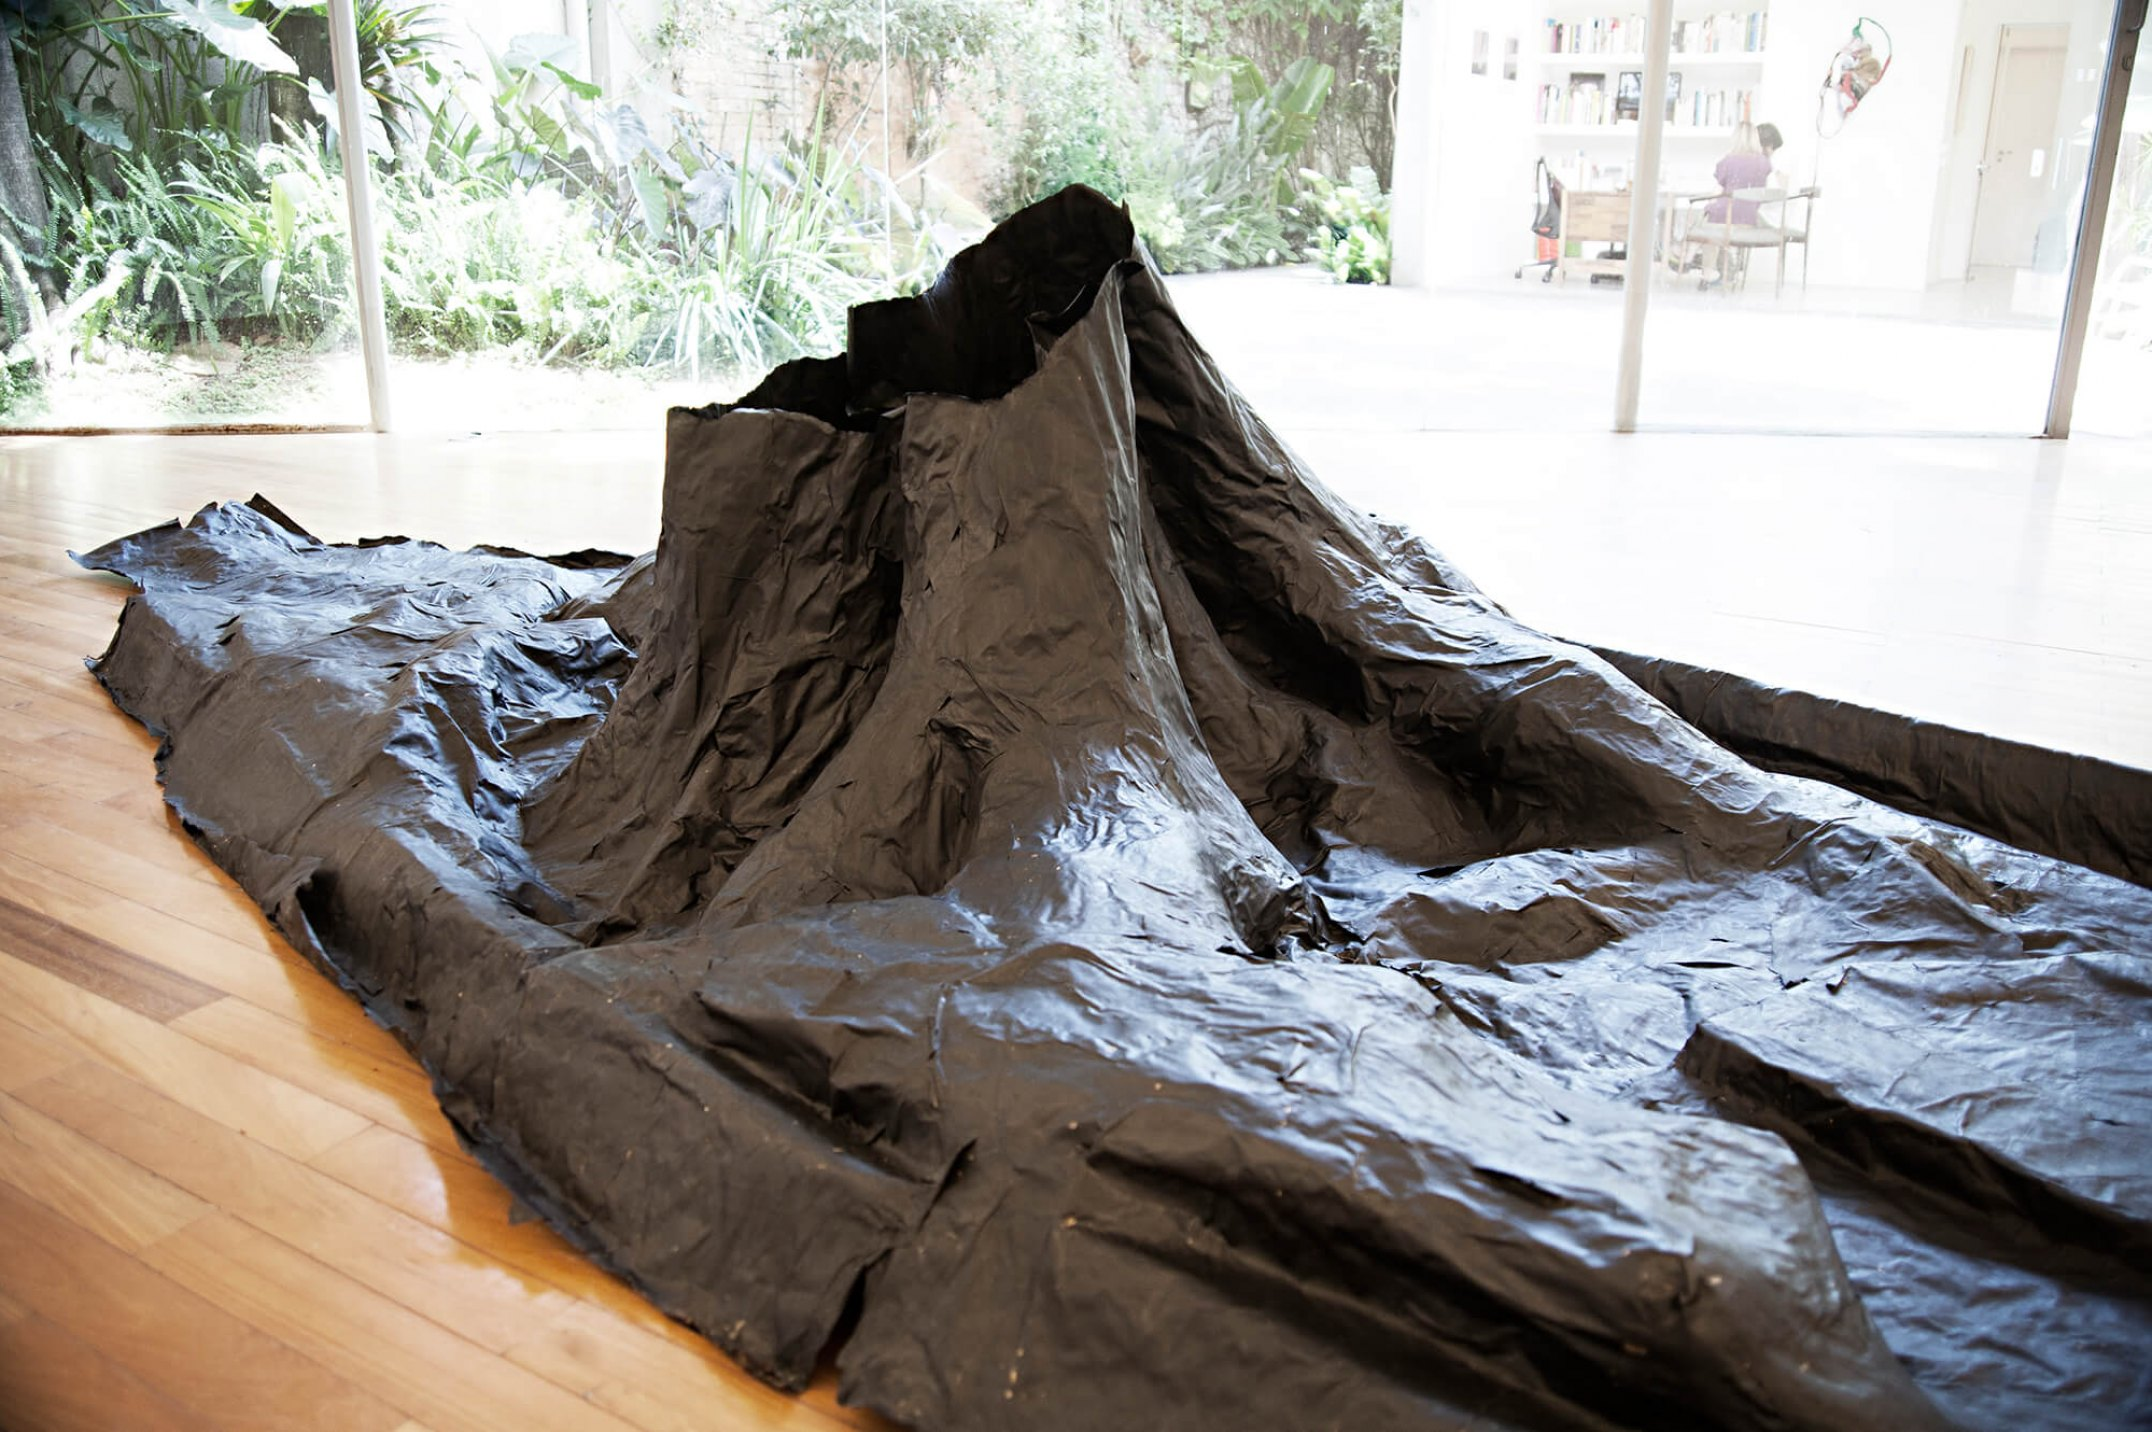 Mariana Castillo Deball, <em>Tree Trap Sao Paulo</em>, 2013, paper squeeze, black cotton paper, 69 × 190 × 400 cm - Mendes Wood DM